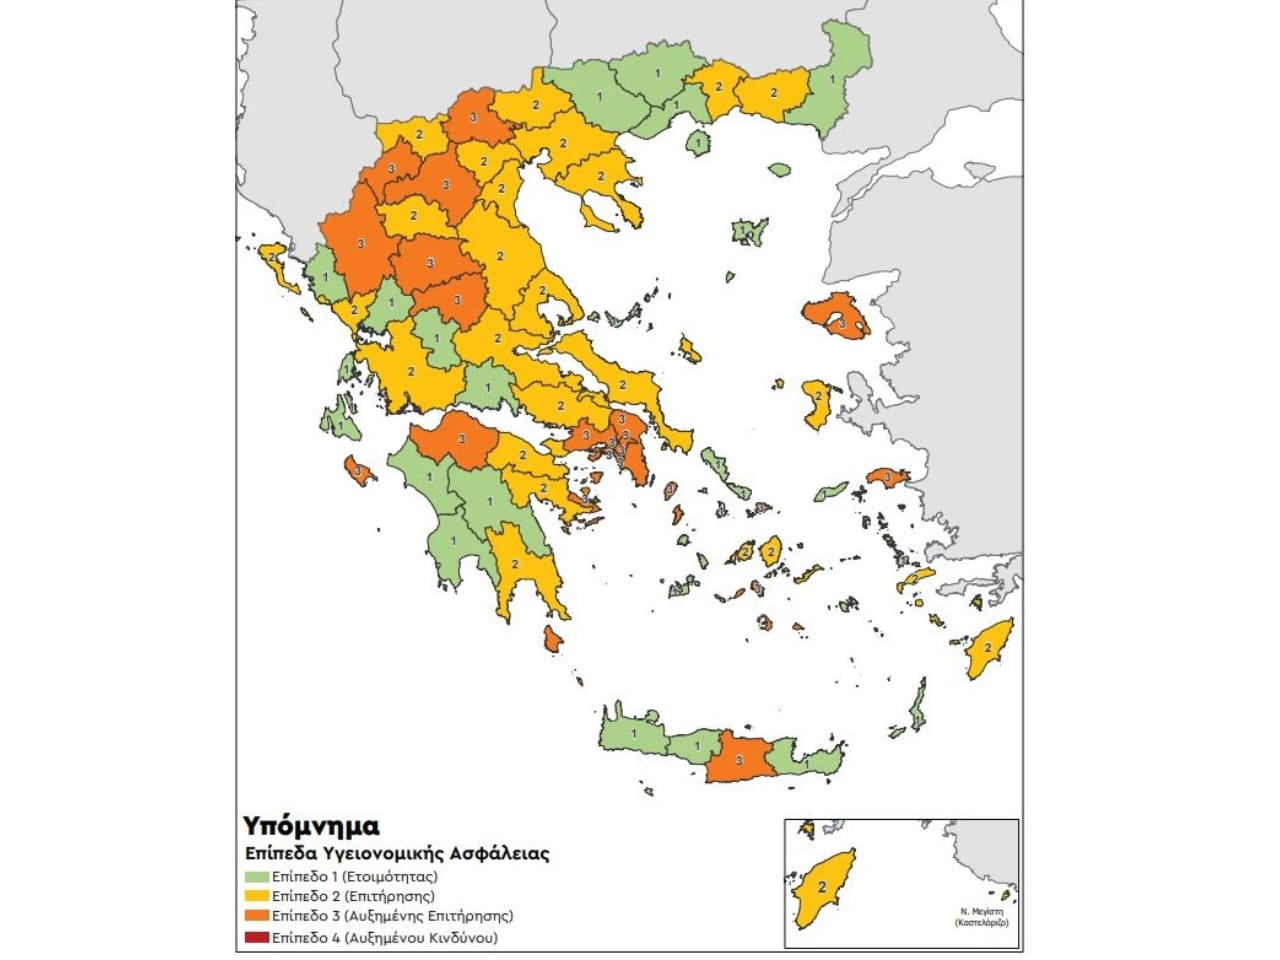 Greece Unveils Online Map with Covid-19 Risk by Regional Unit